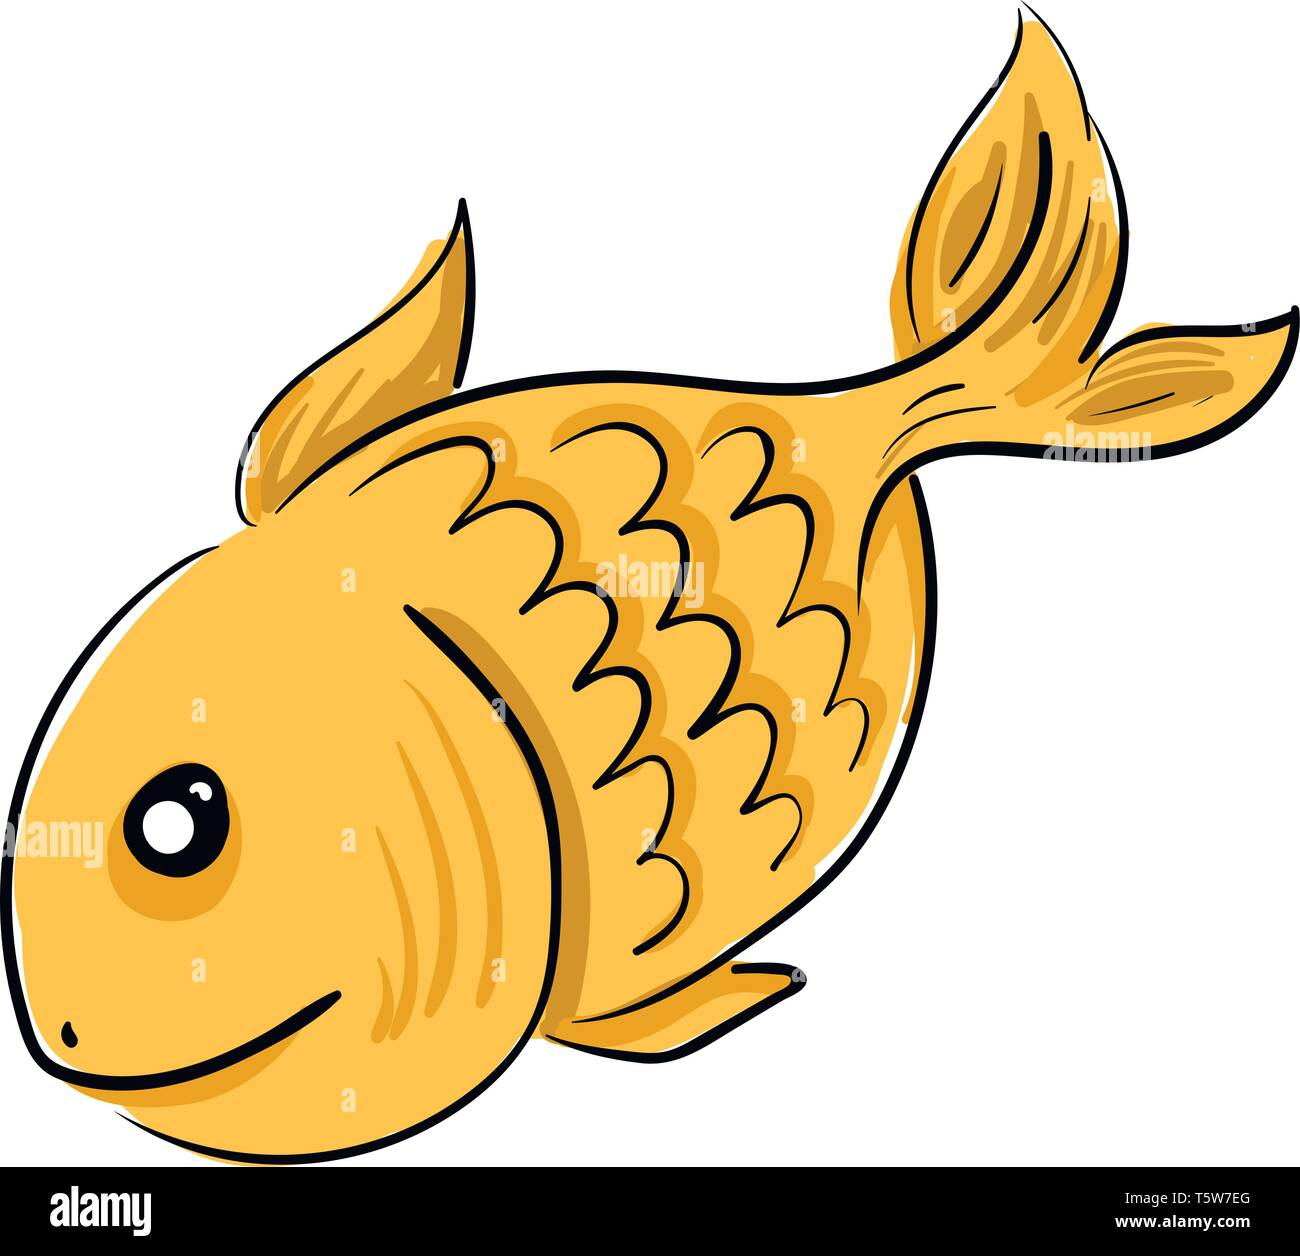 a golden fish with black eyes swimming freely in the river vector color drawing or illustration stock vector image art alamy https www alamy com a golden fish with black eyes swimming freely in the river vector color drawing or illustration image244573128 html